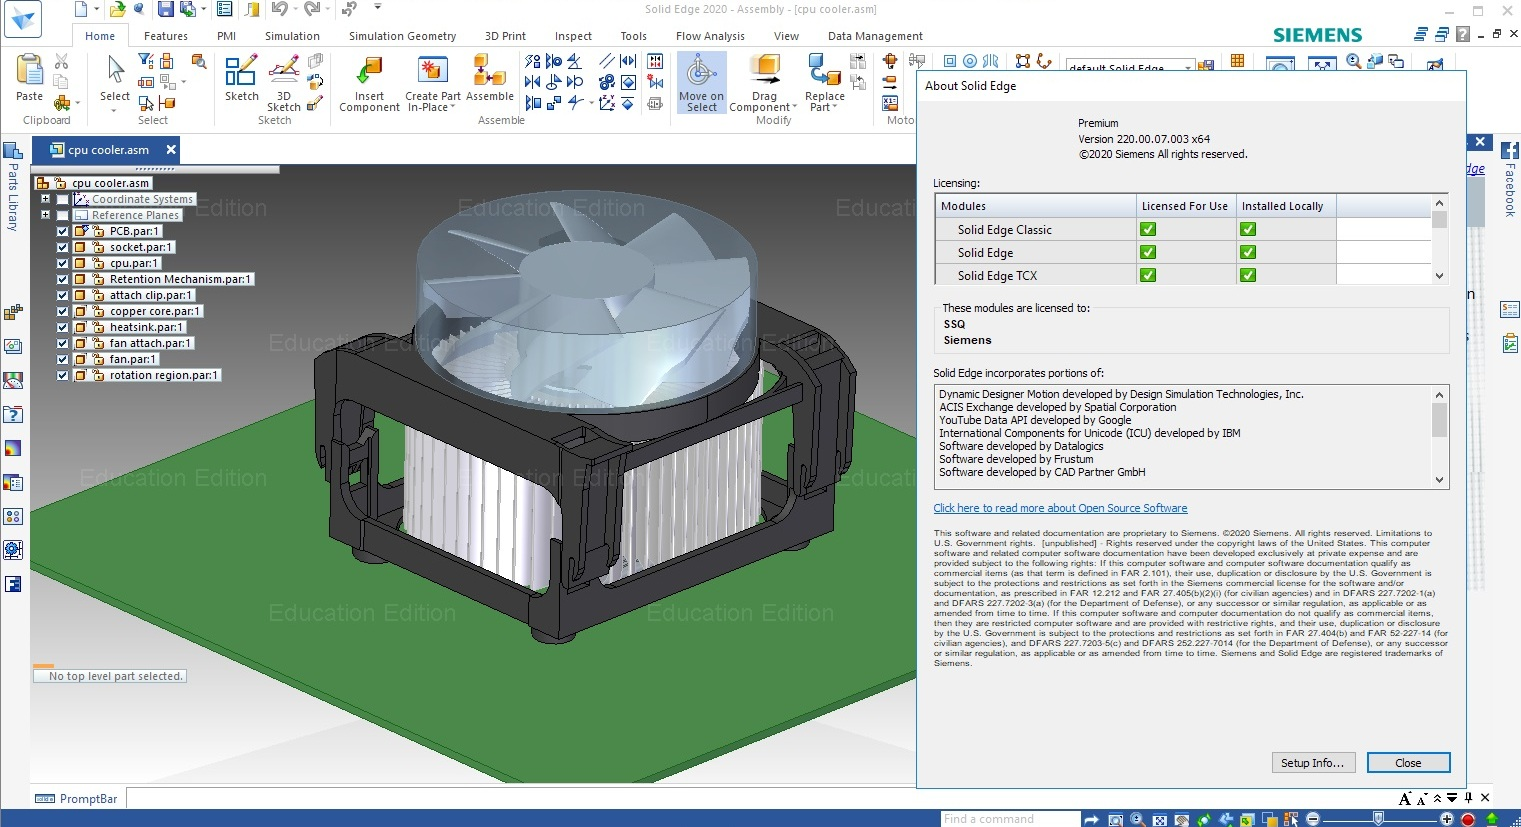 Working with Siemens Solid Edge 2020 MP07 full license